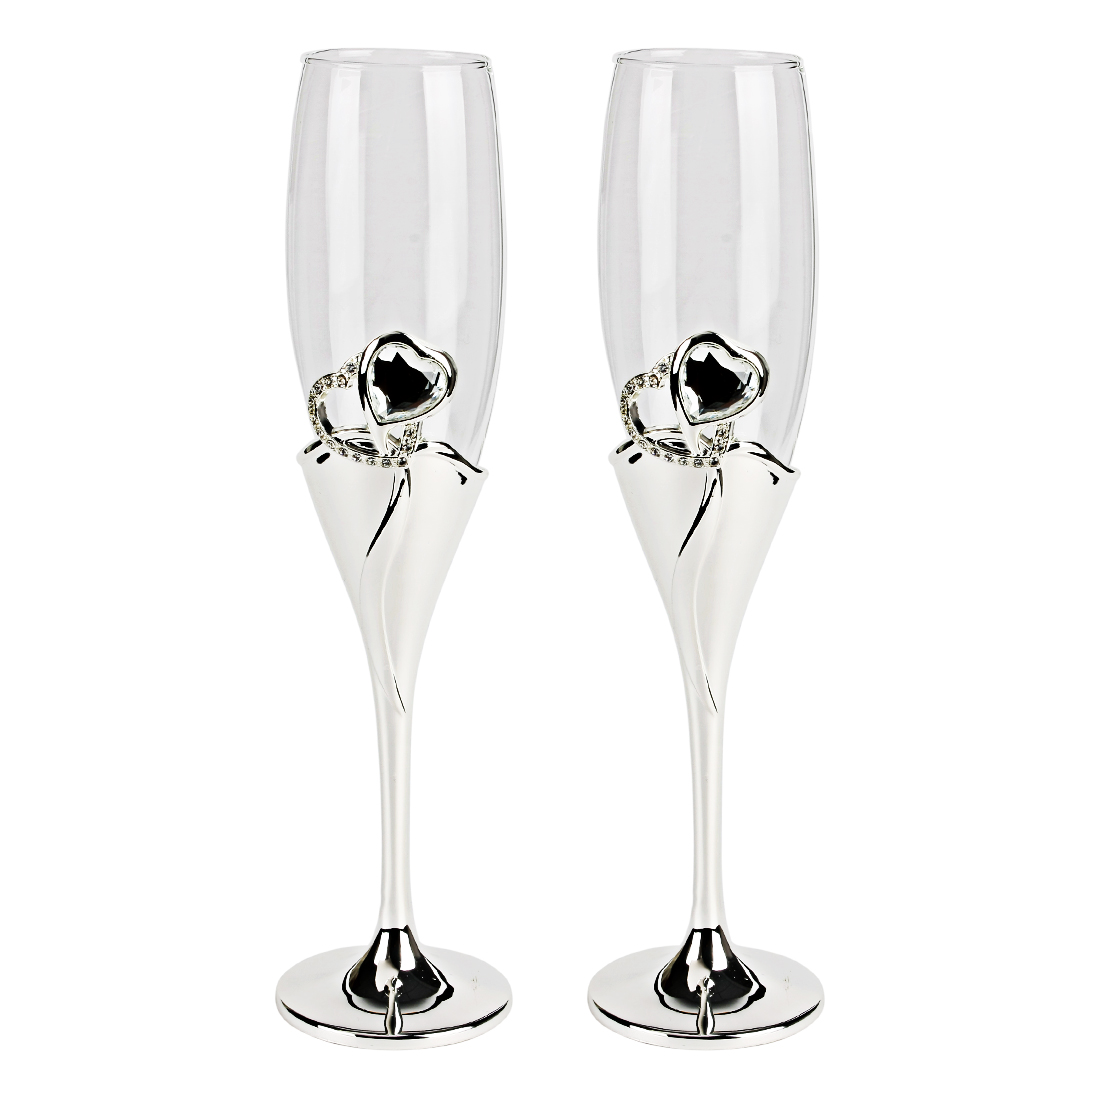 2 Pcs Wedding Champagne Silver Plated Stem Diamante Flutes Toasting Glasses